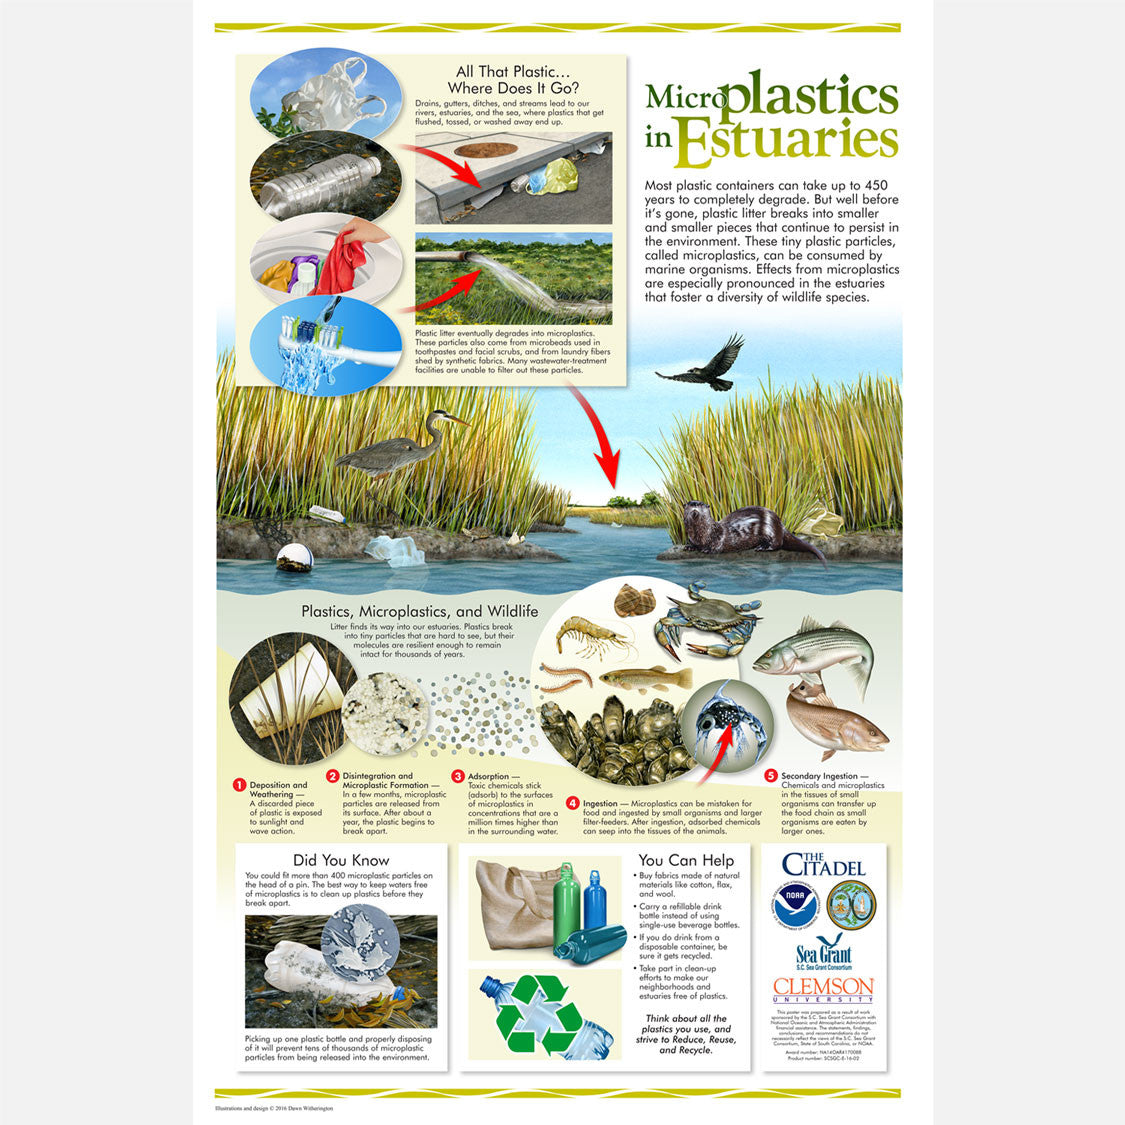 Microplastics in Estuaries